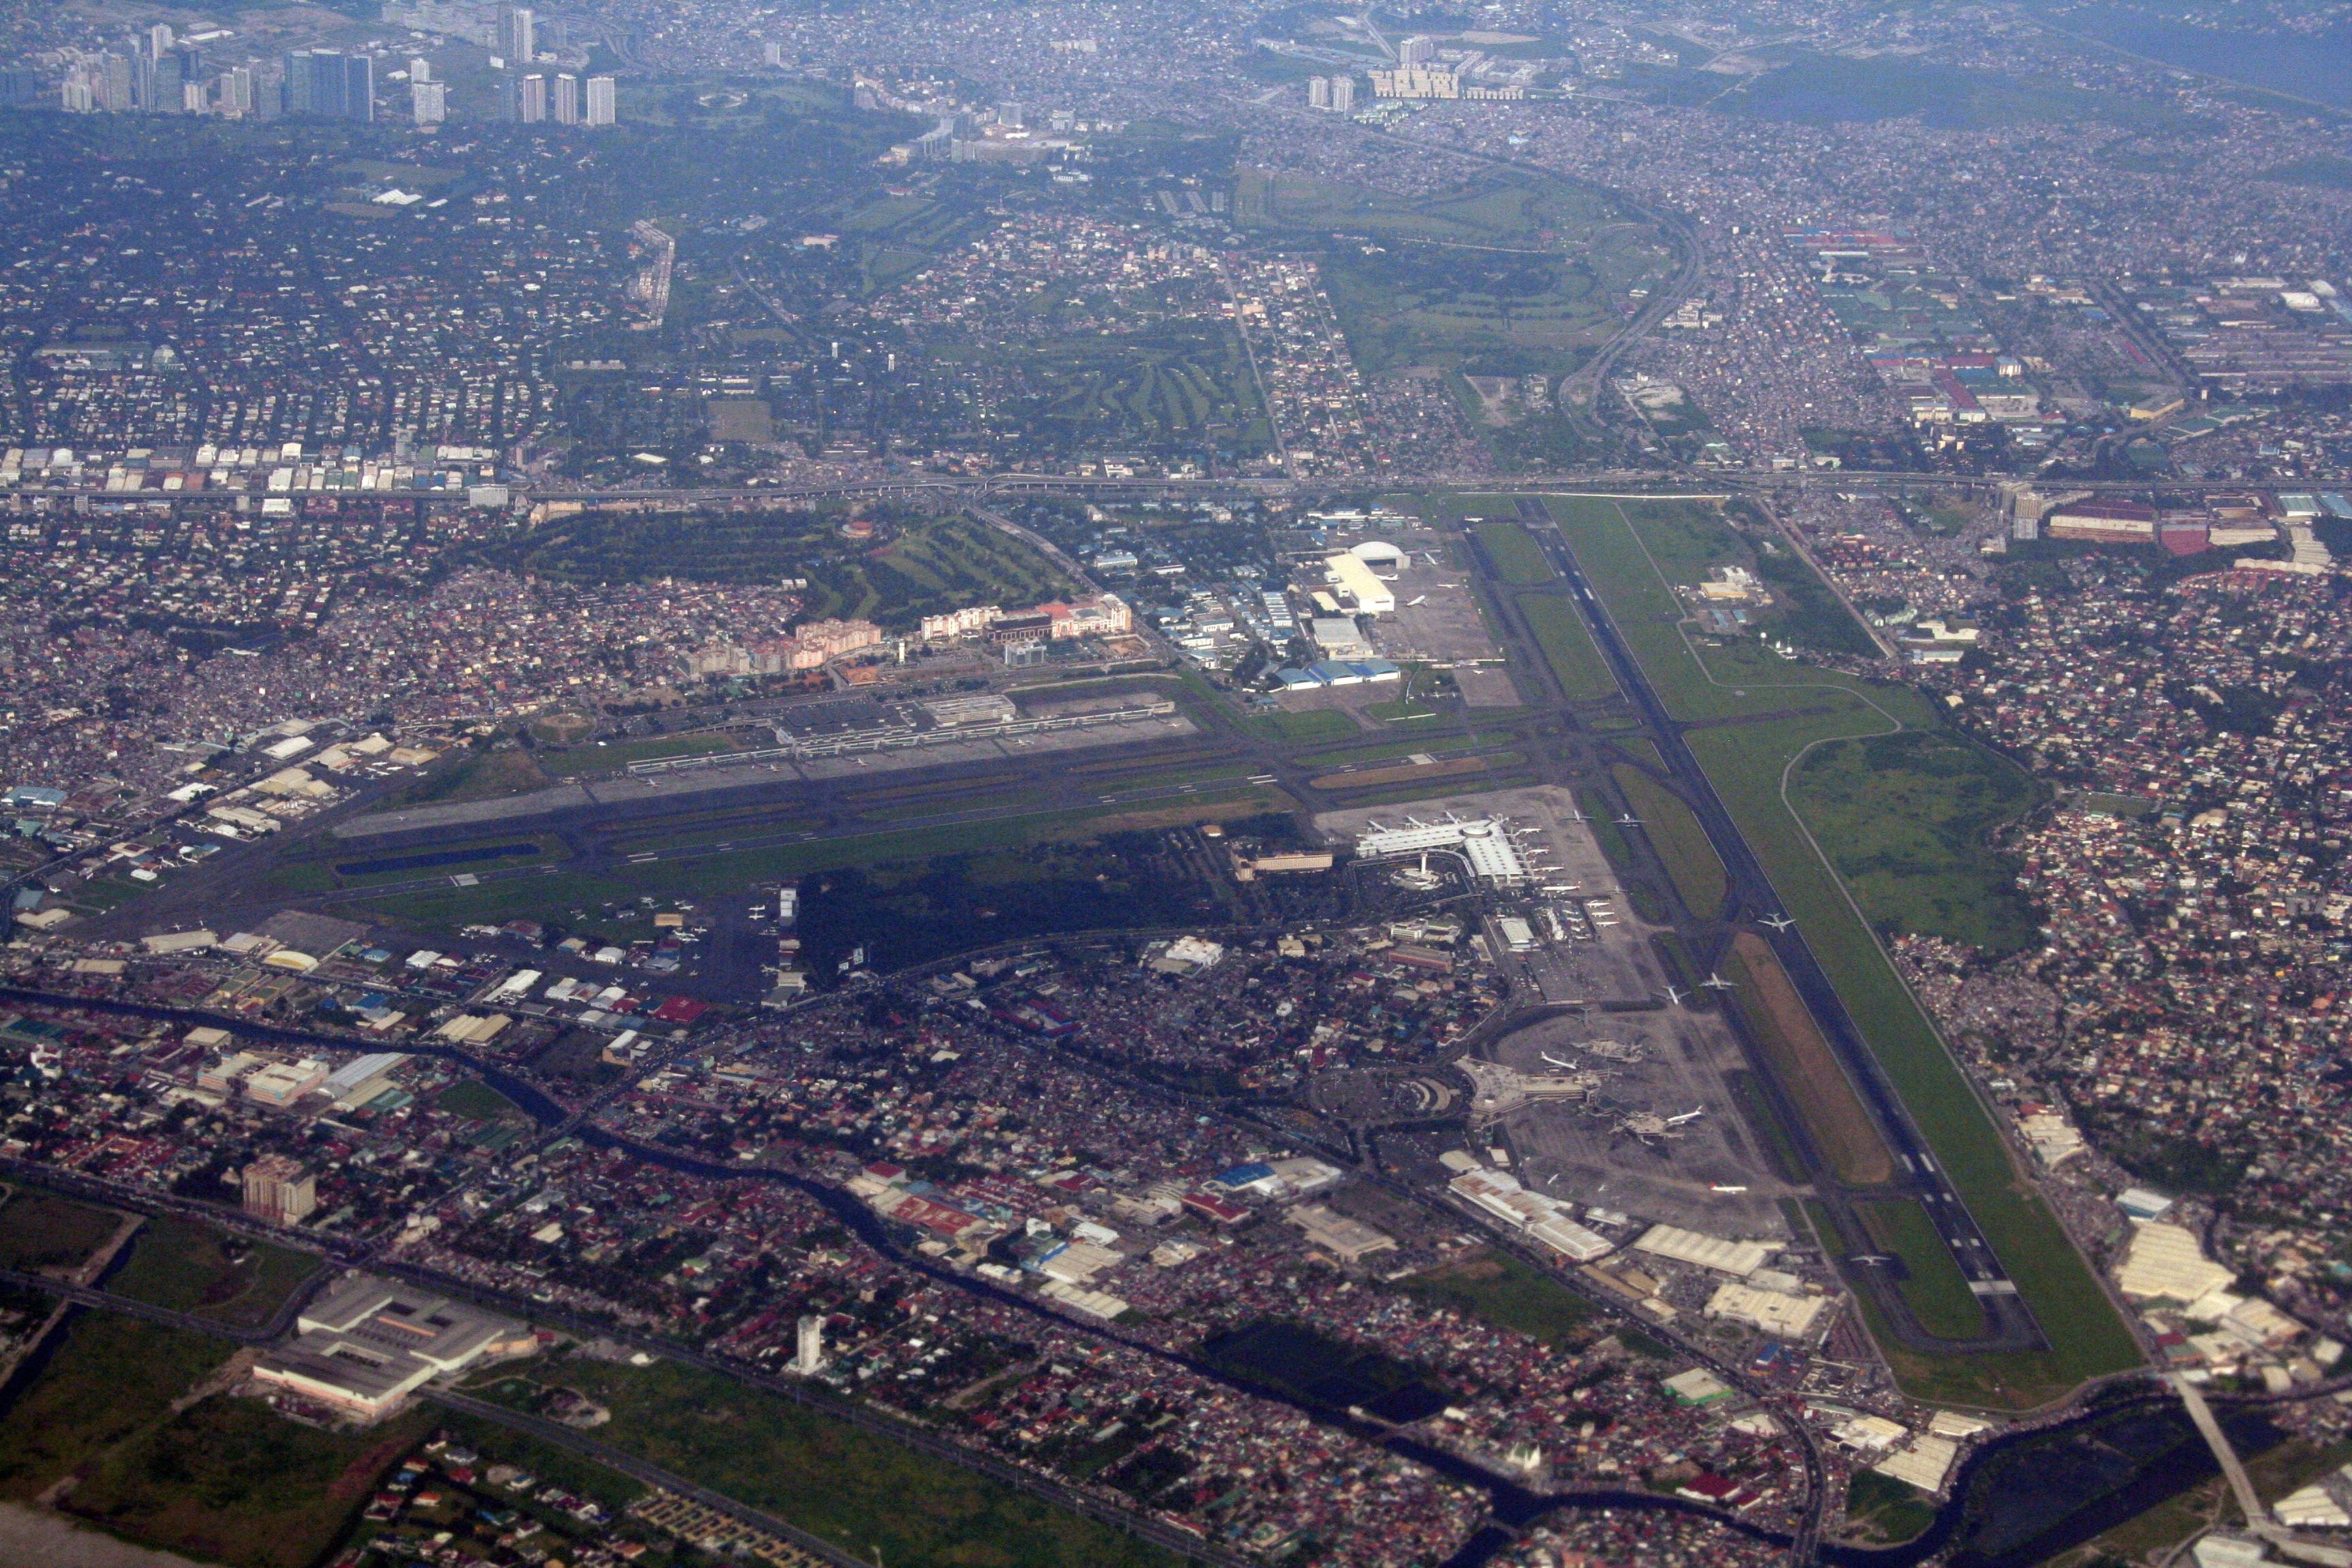 Ninoy Aquino International Airport - Wikipedia